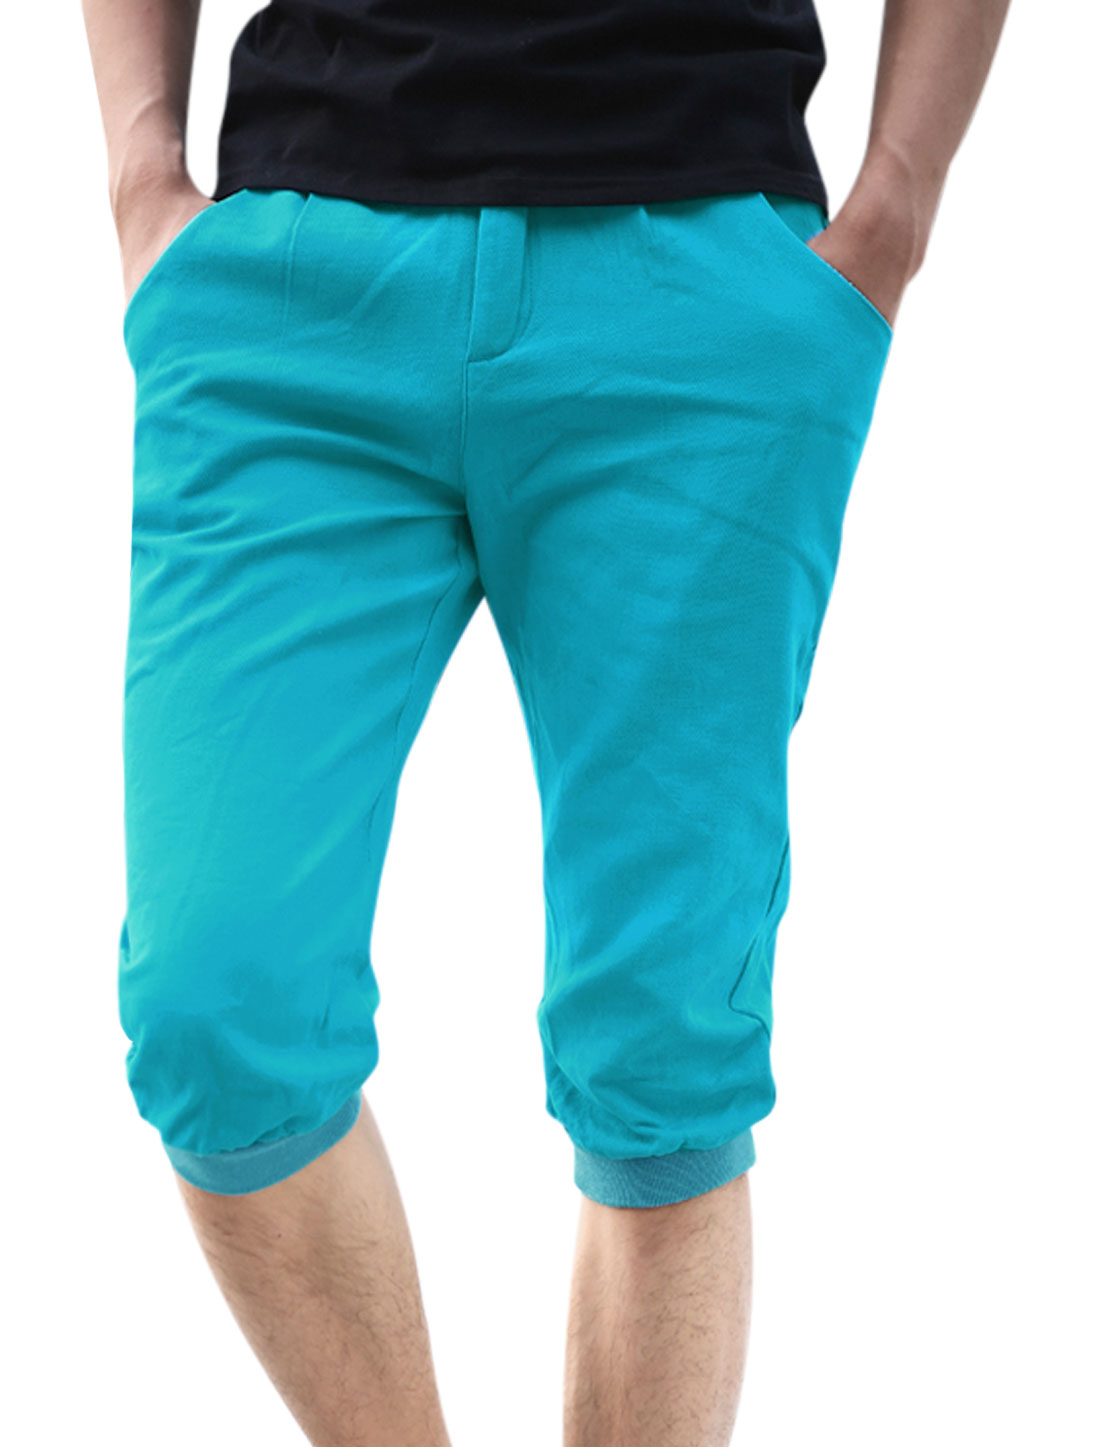 Belt Loop Zip Front Ribbed Patched Cuffs Capris Pants for Men Blue W32